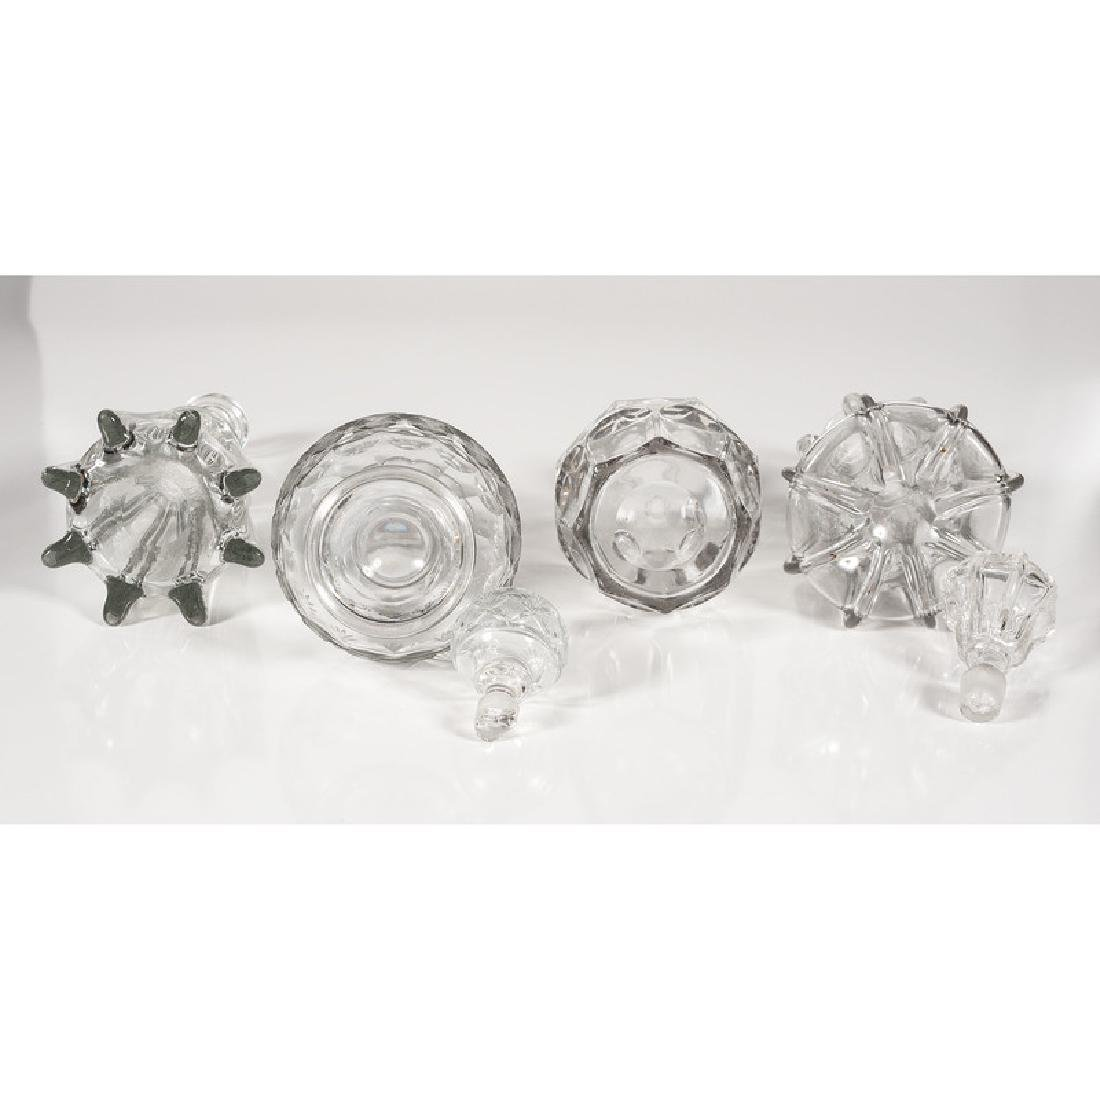 Pittsburgh Glass Decanters - 4